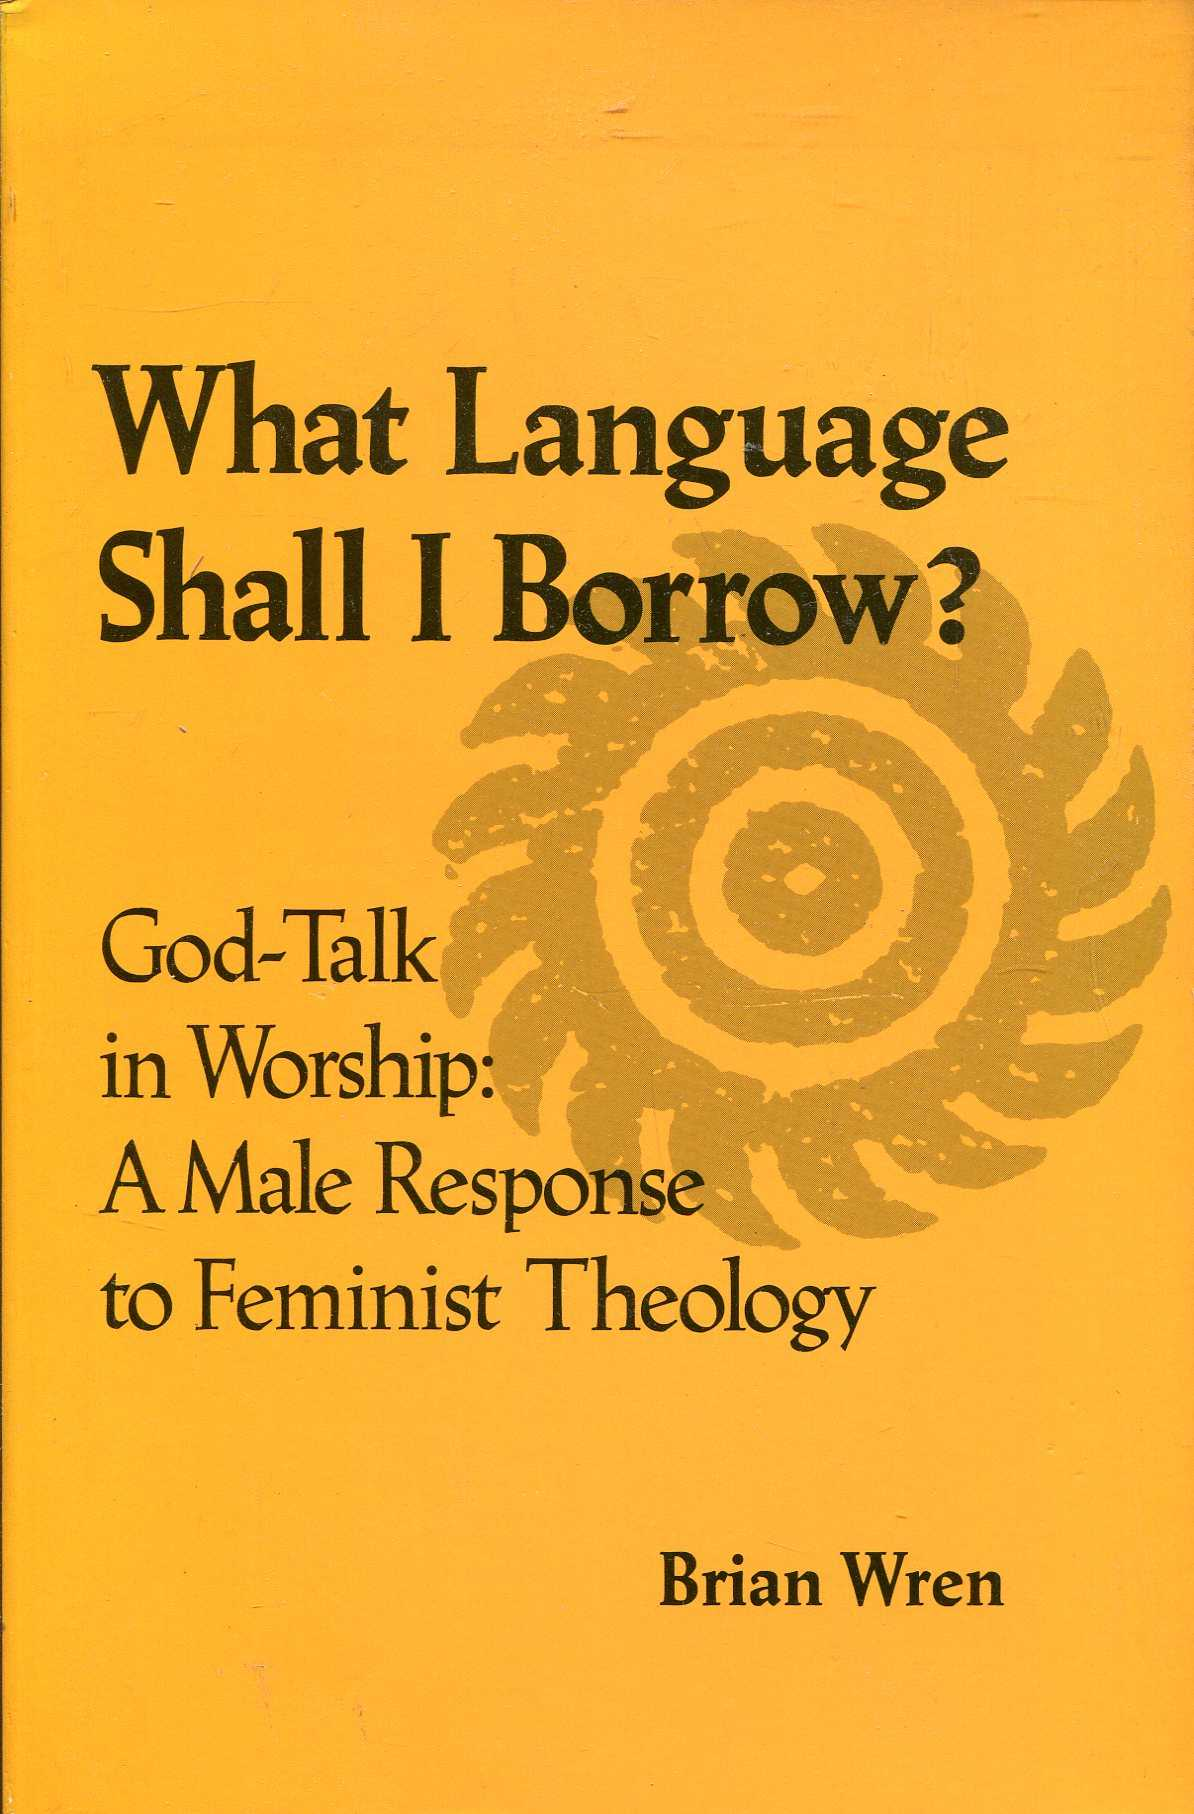 Image for What Language Shall I Borrow? God Talk in Worship: A Male Response to Feminist Theology